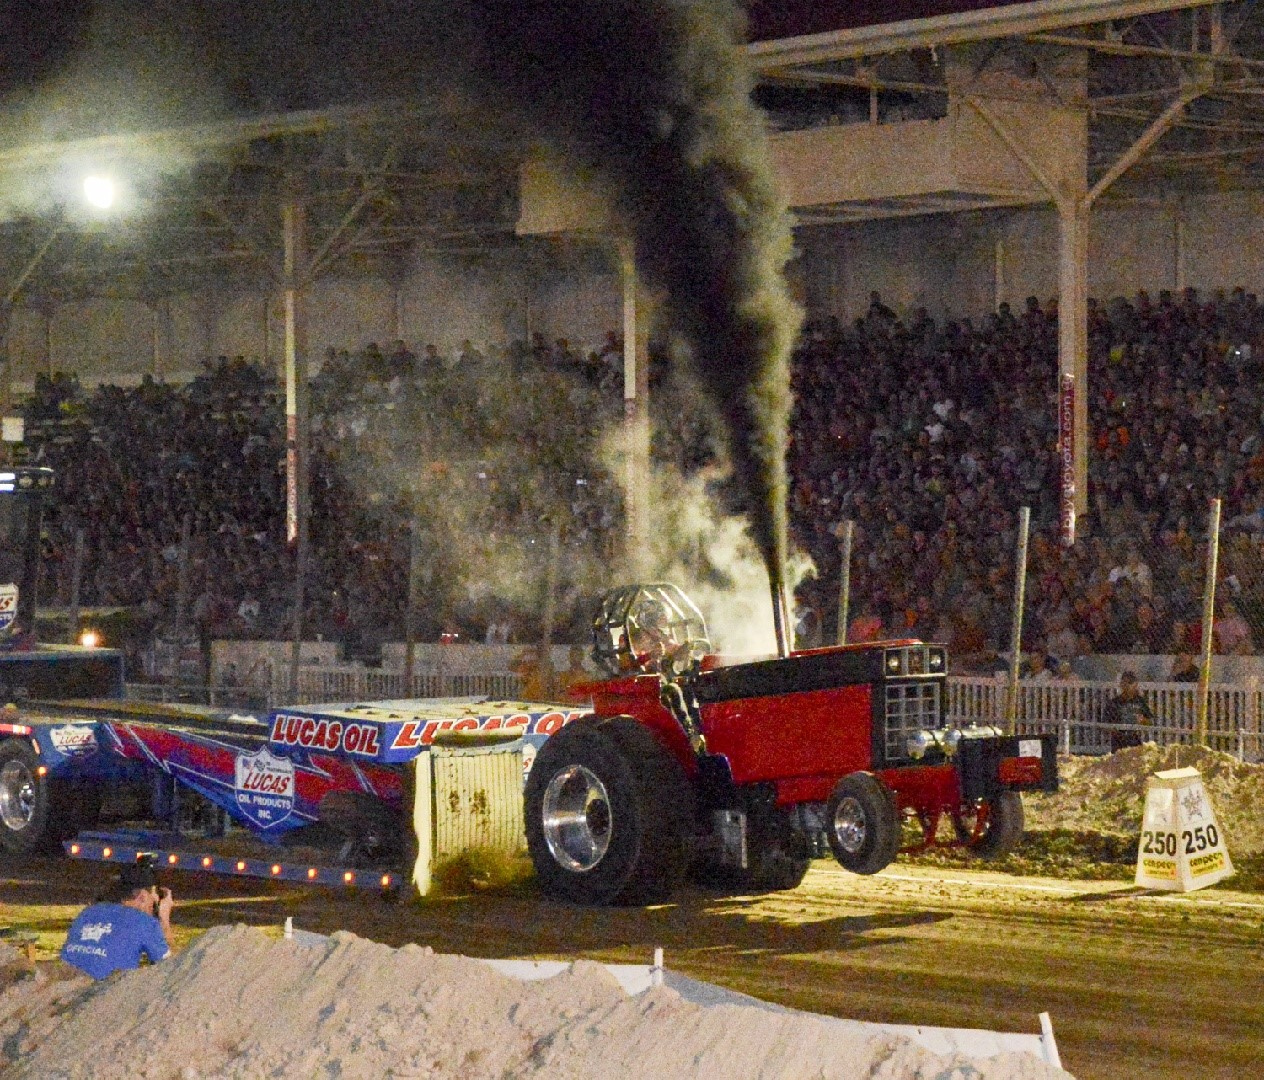 Fairfield Chrysler Dodge Jeep Ram of Muncy & Danville Presents: Full Pull  Productions, Inc Sanctioned Tractor and Truck Pulling - Bloomsburg Fair